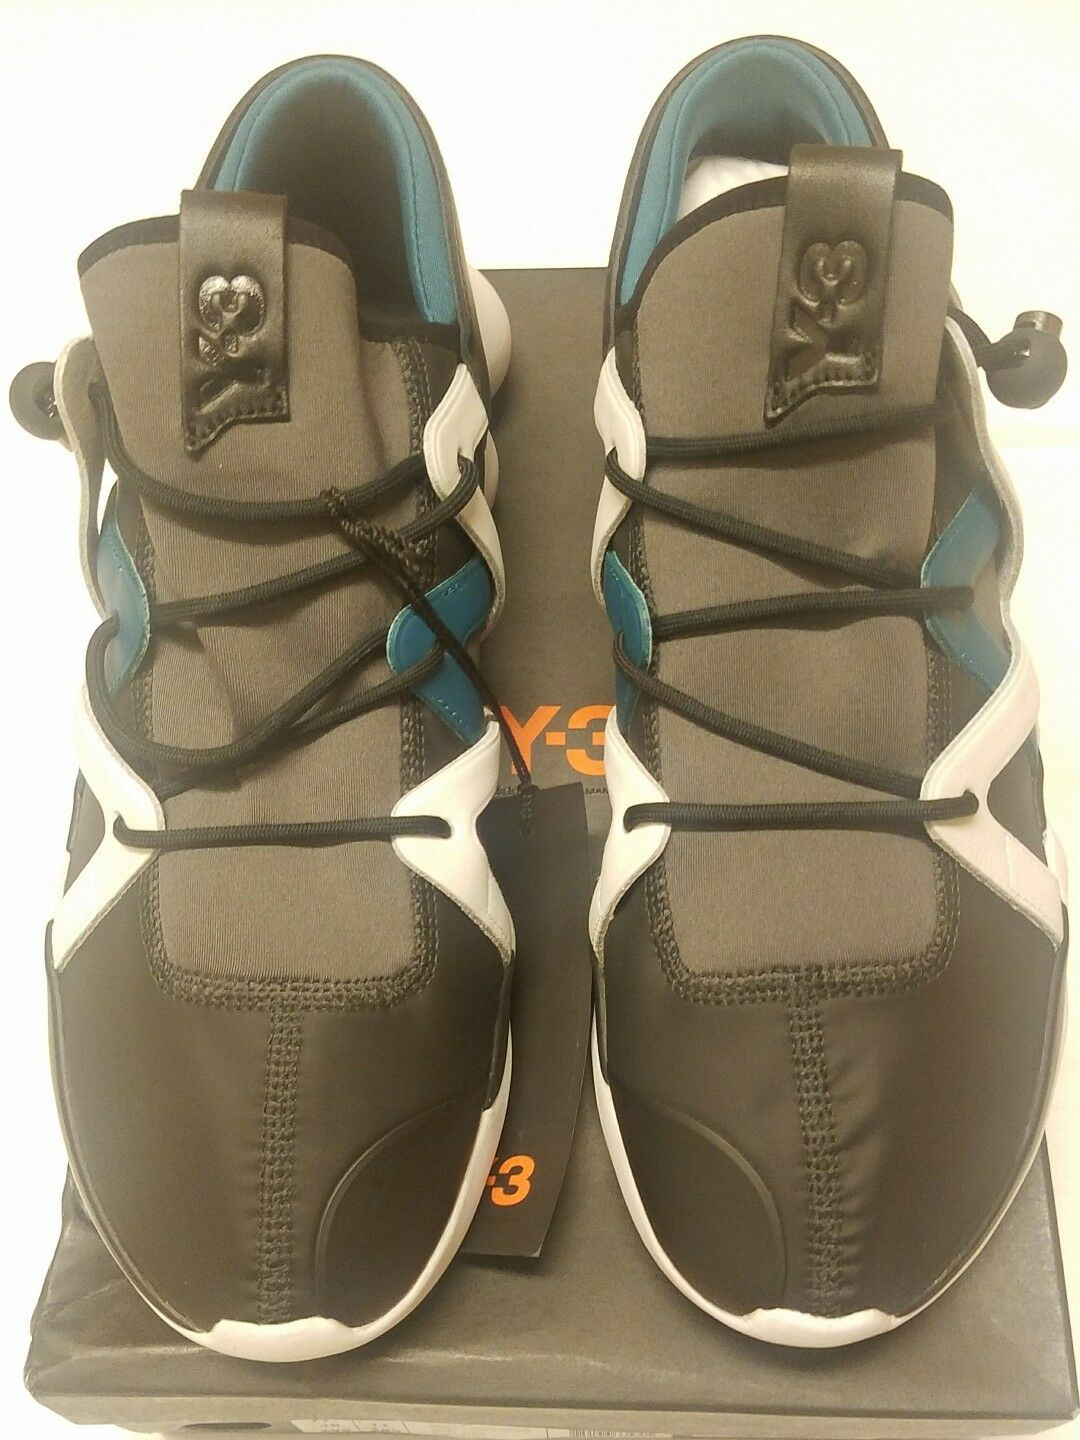 Adidas Adidas Adidas Y-3 Kyujo Low Top Sneakers, Multi-color (BB4737) Size 12.5 US 9e81f2